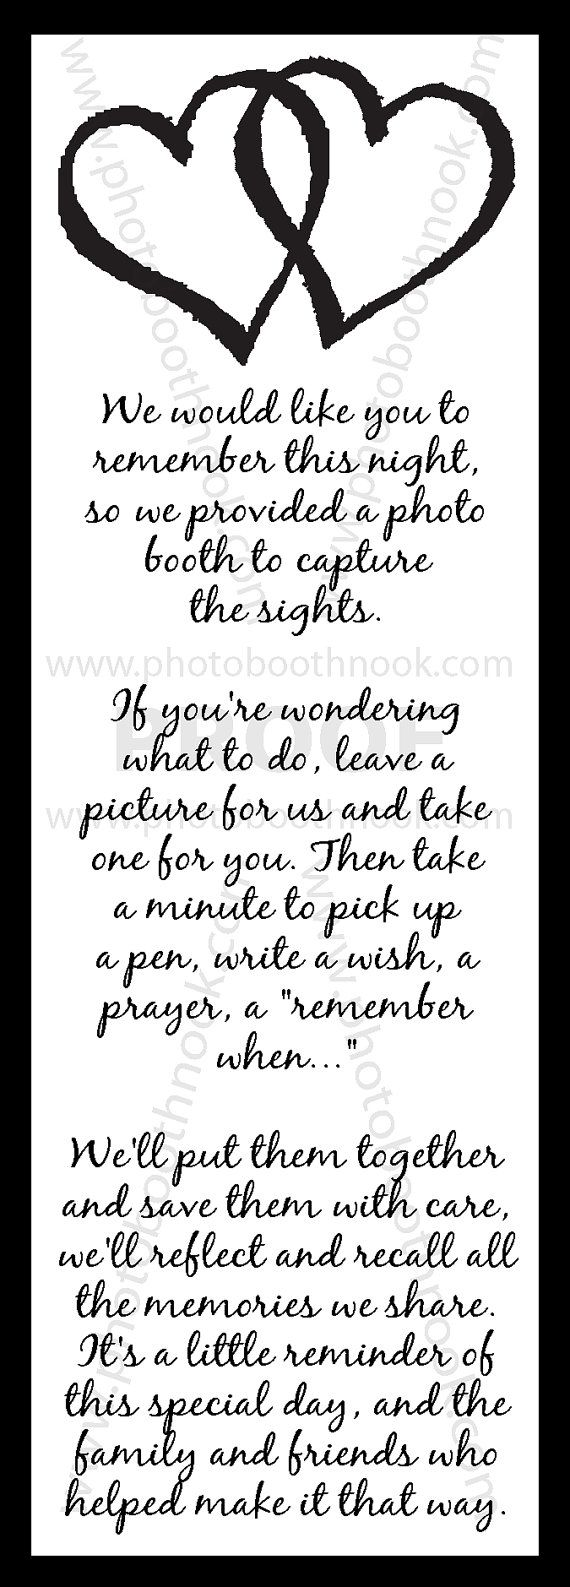 69 best Photo Booth Ideas images on Pinterest   Booth ideas, Photo ...